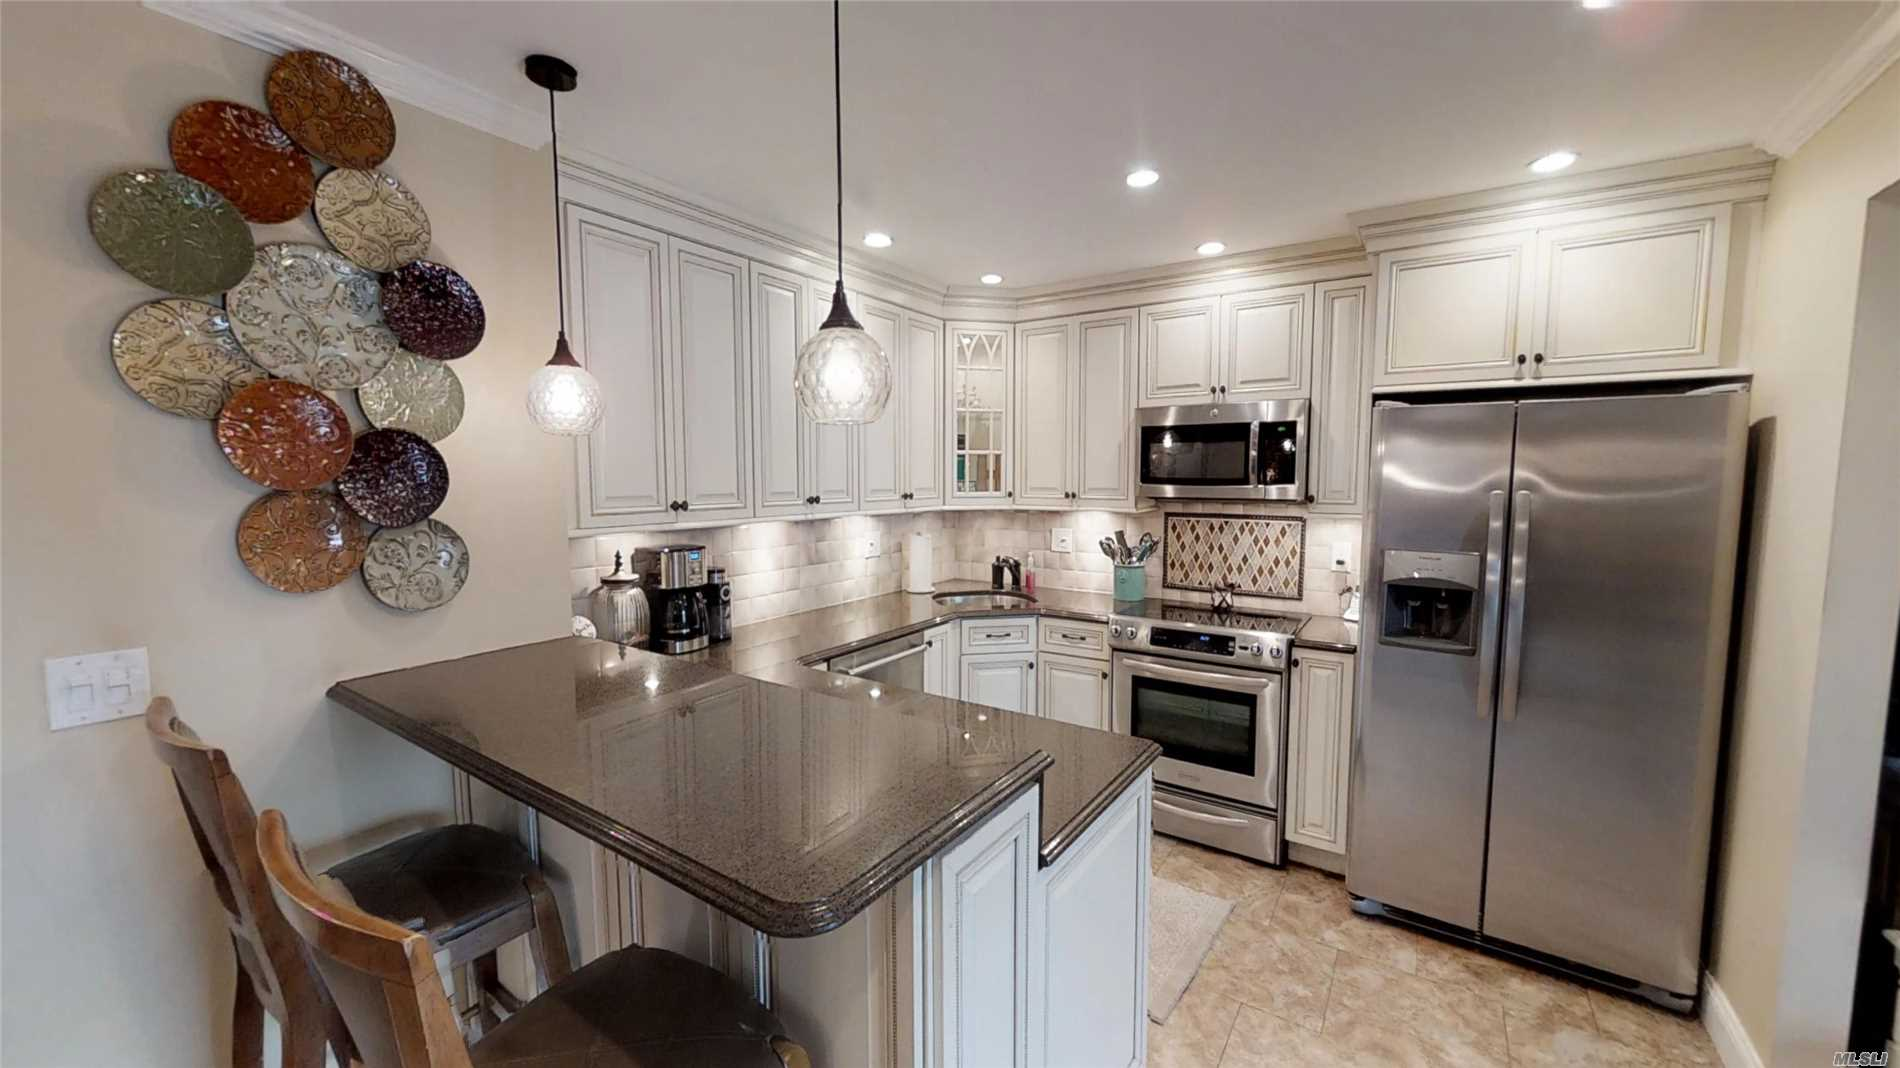 This wonderful Farm Ranch has 5 BR, 3 bathrooms and is in the Connetquot school district! Open floor plan lends itself to entertaining. Close to transportation, Lake Ronkonkoma beach and more!